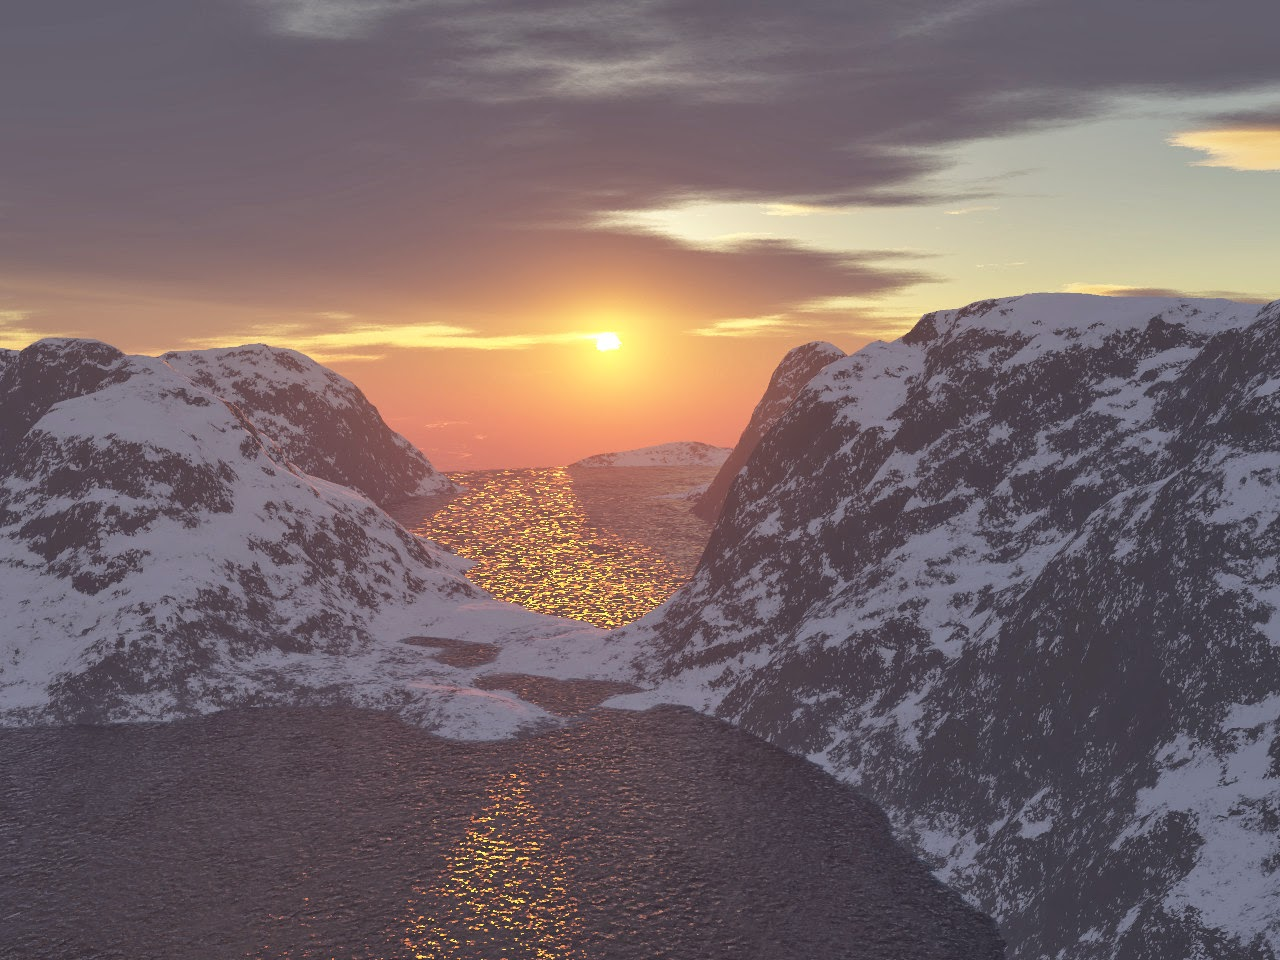 Snowy Mountains Wallpaper Sunset | www.imgkid.com - The ...